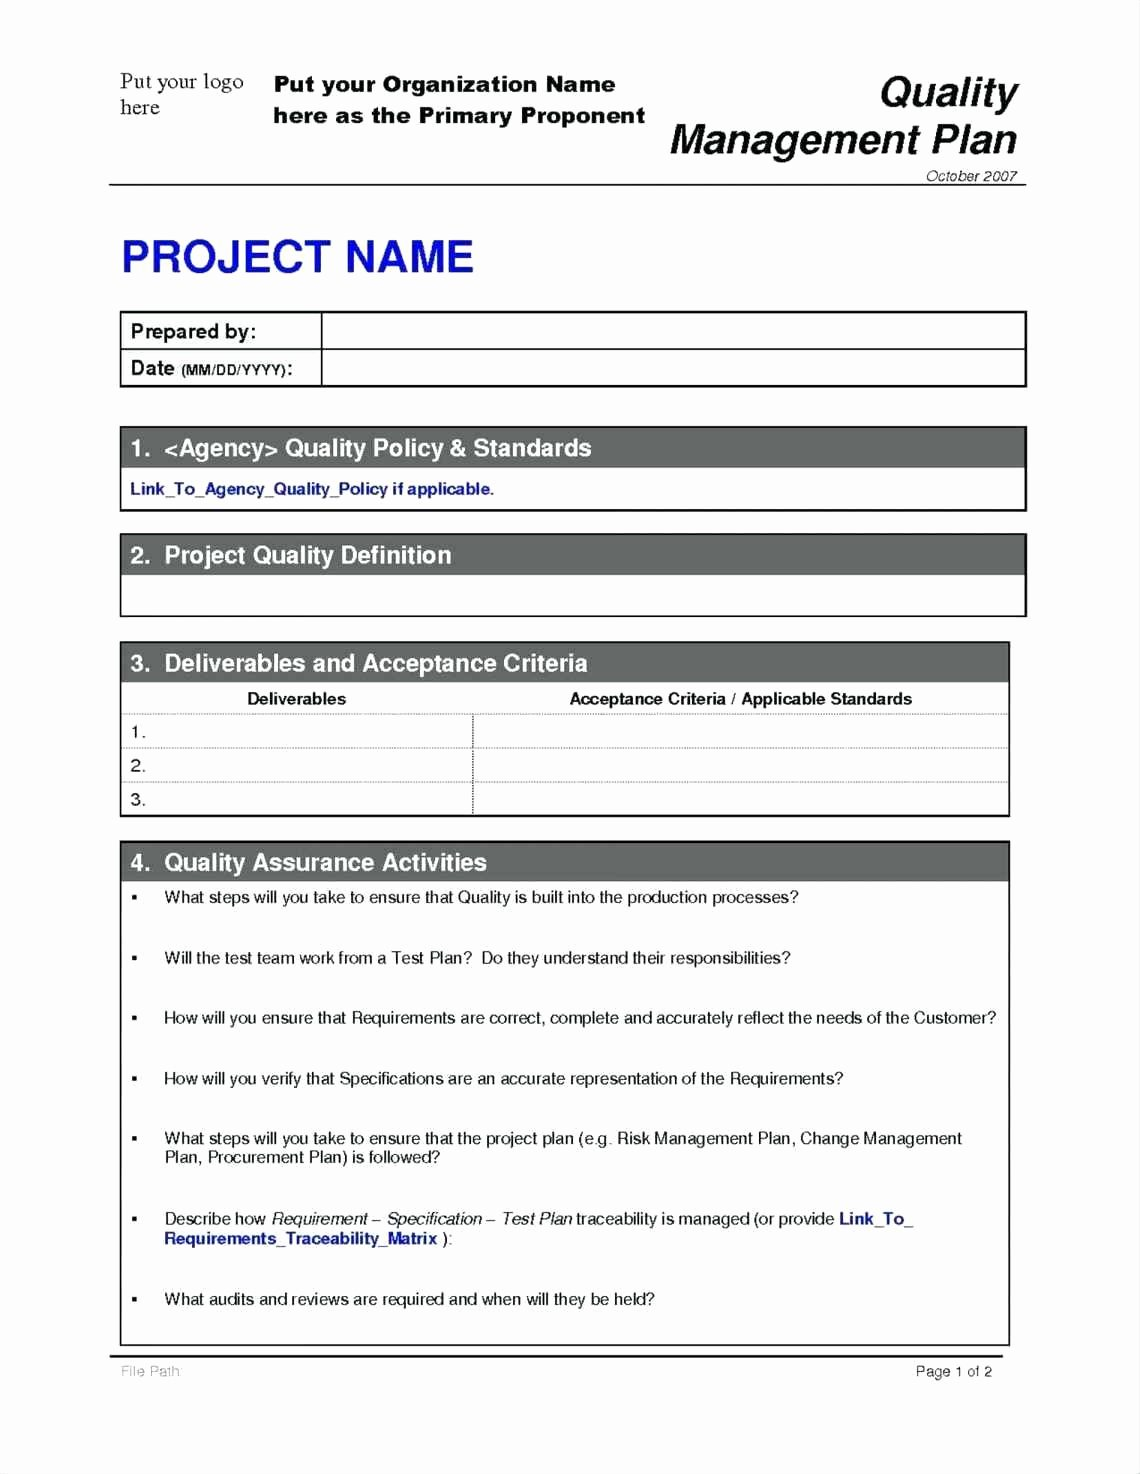 Project Management Plan Template Luxury Project Management Process Template Funresearcher